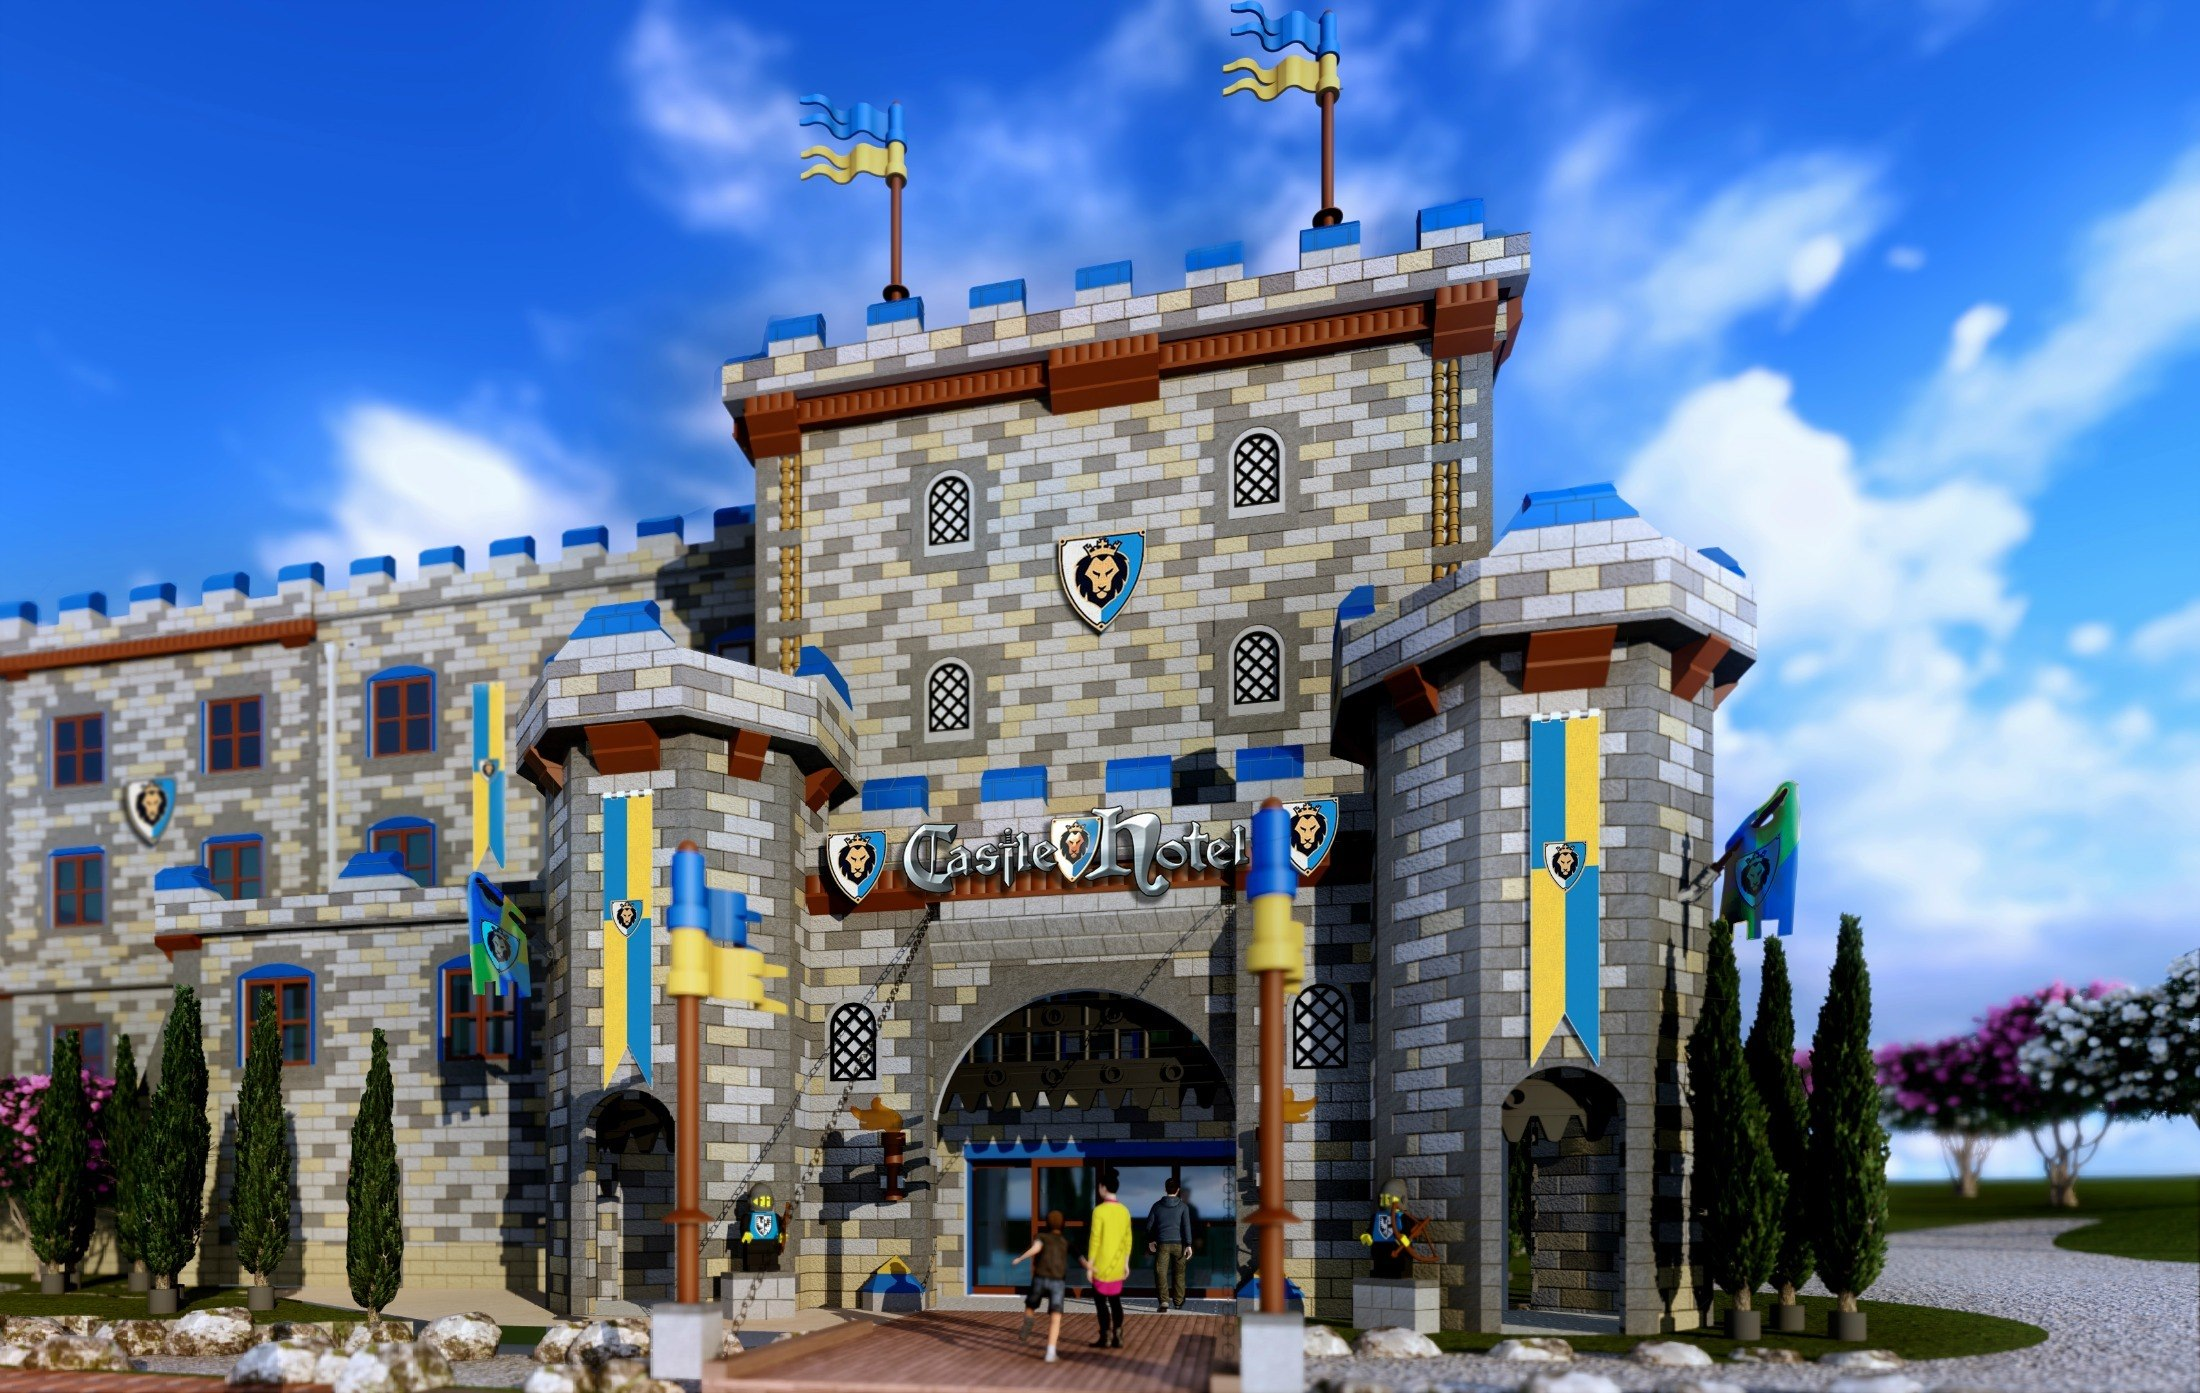 Hotels Near Legoland Include The Brand New Castle Hotel